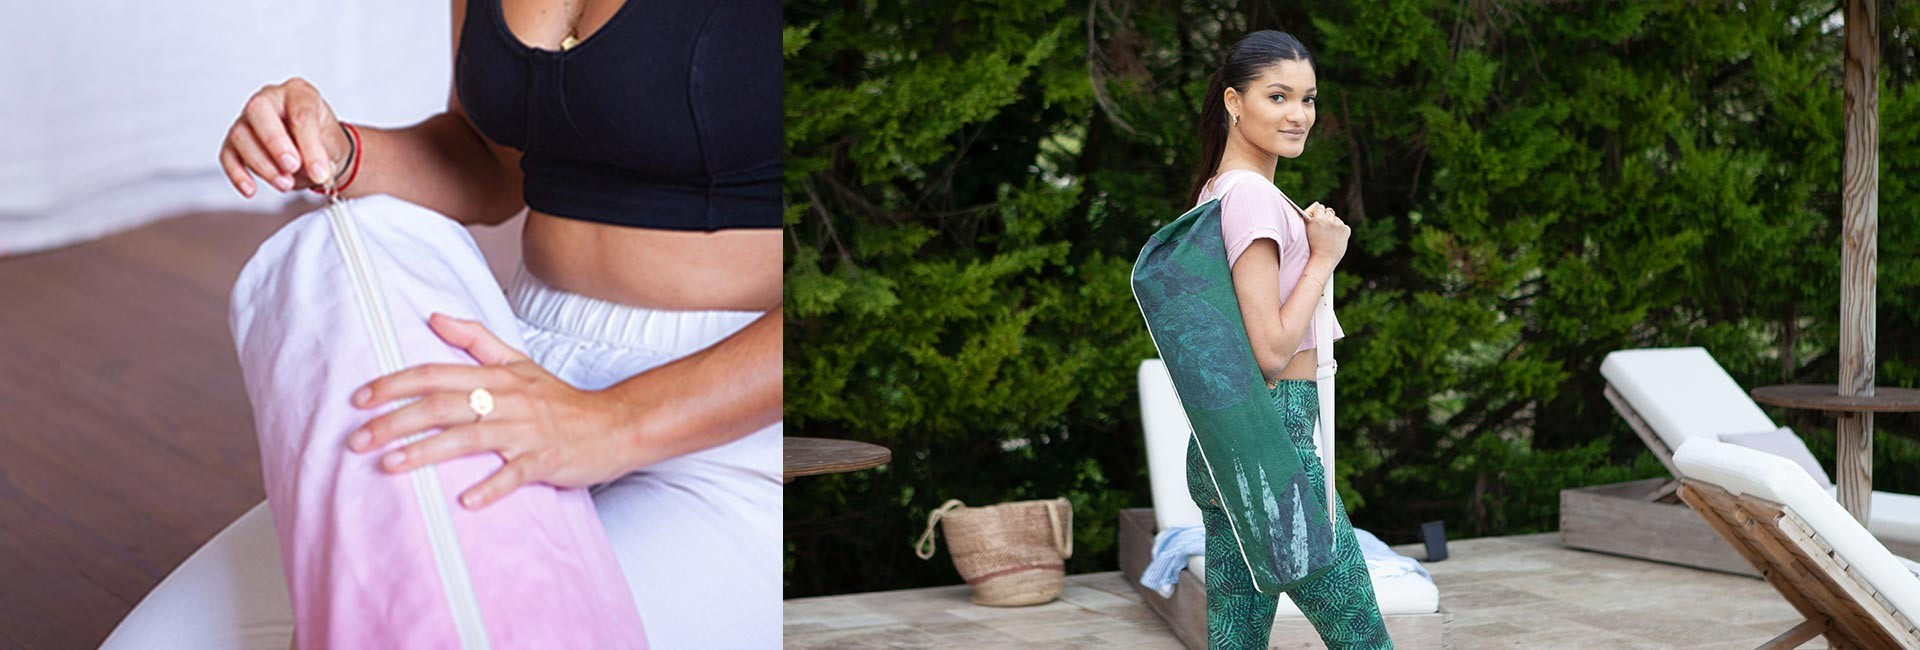 Bags and covers for yoga mats